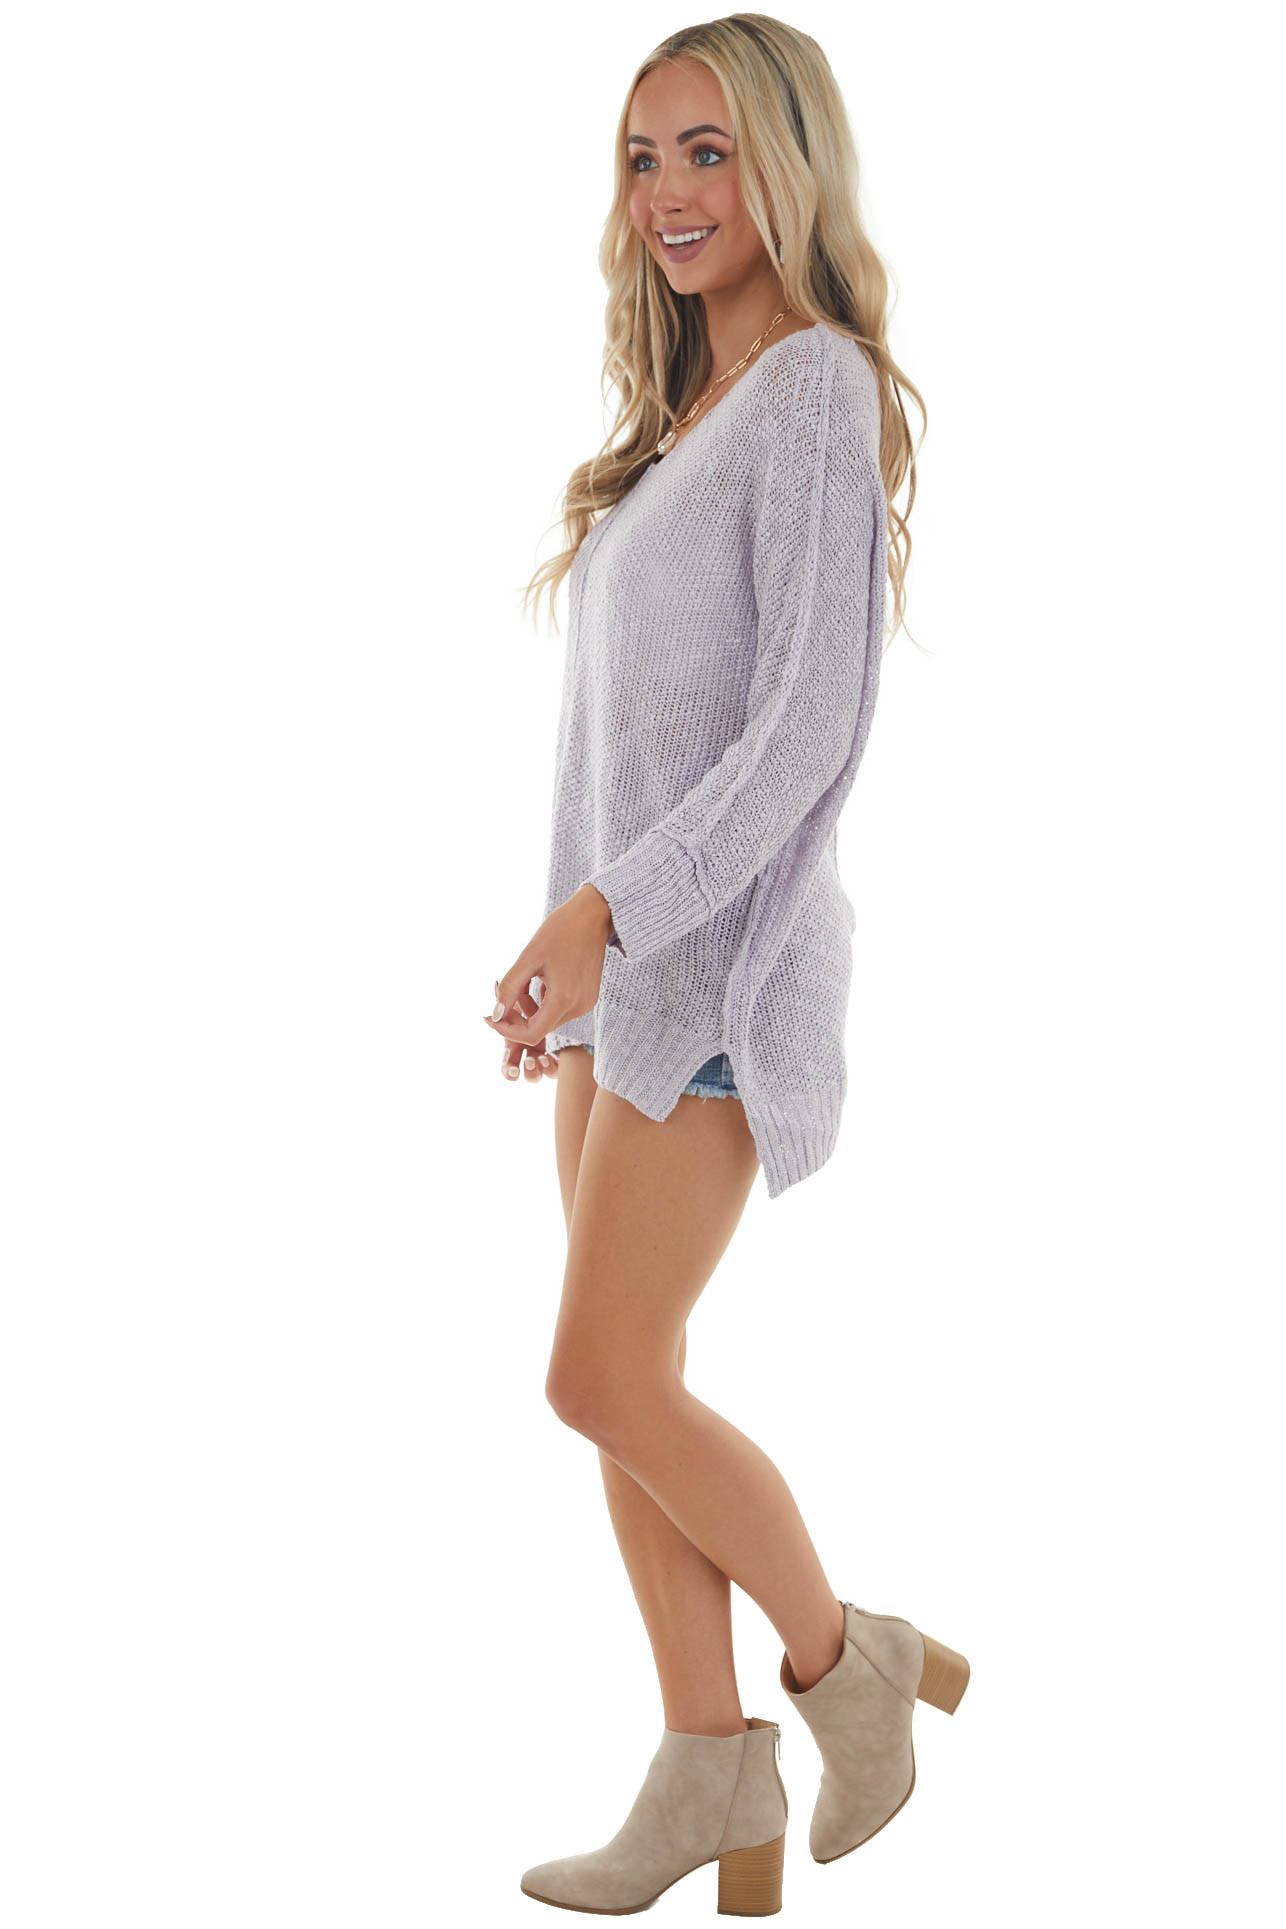 Lavender Knit Lightweight Sweater with Cuffed Long Sleeves